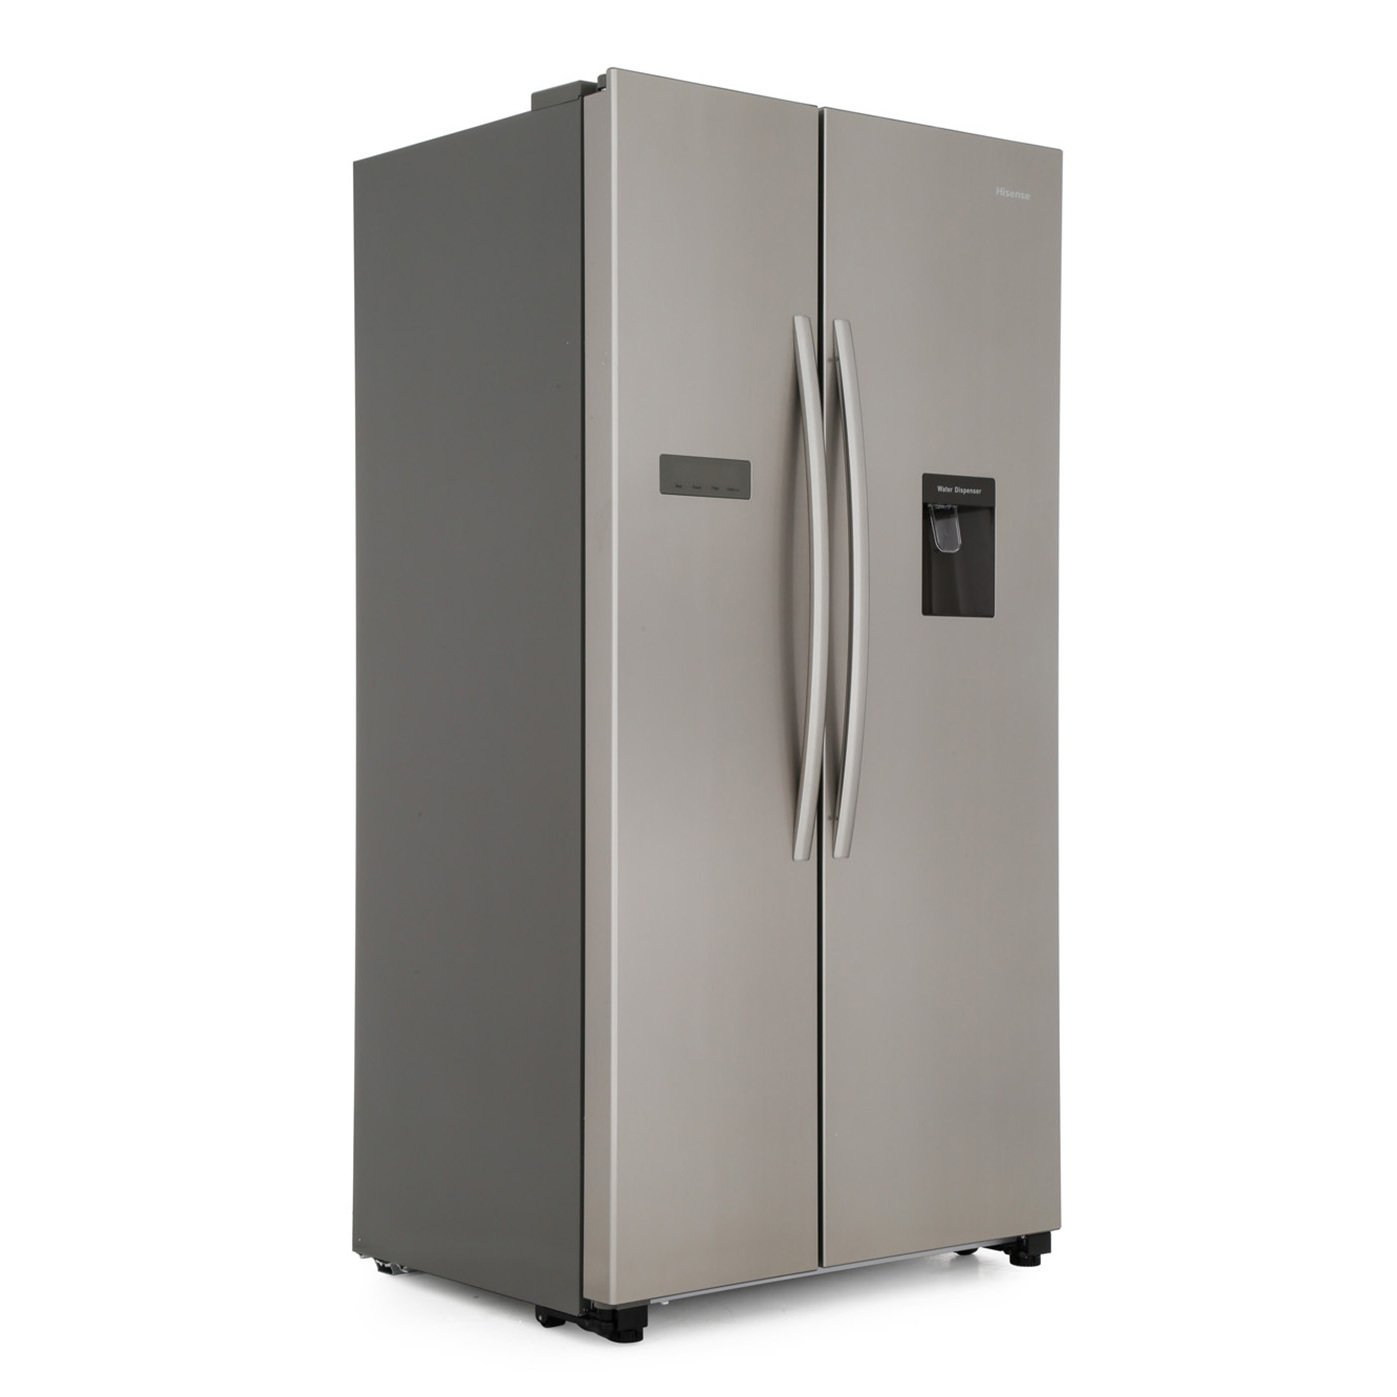 Hisense RS741N4WC11 American Fridge Freezer